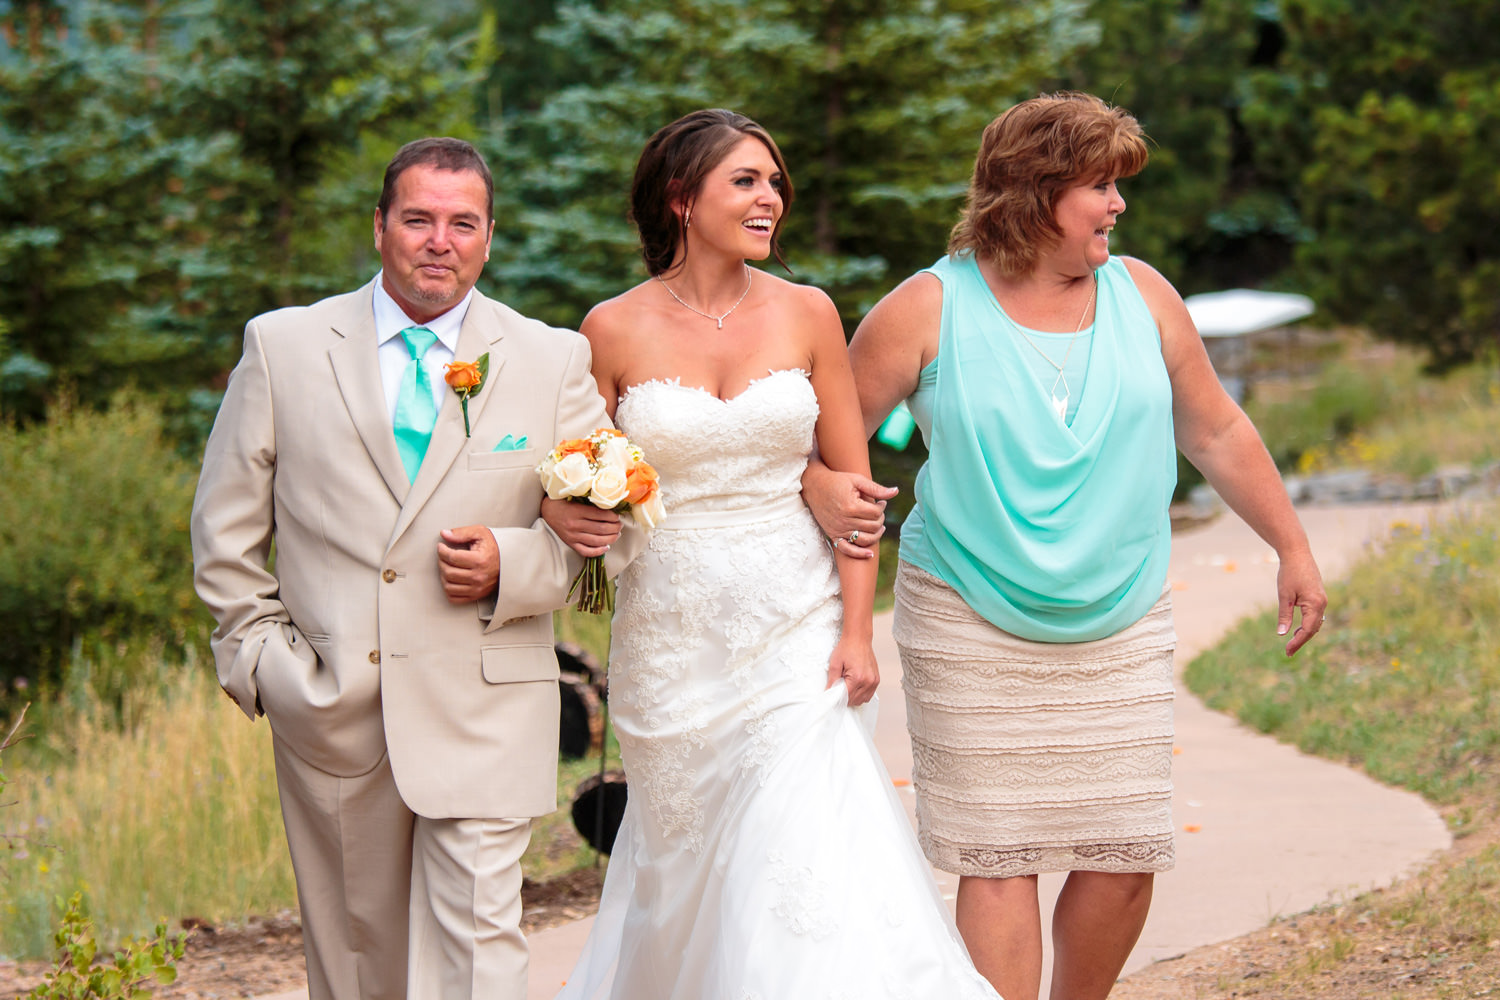 taharaa-mountain-lodge-wedding-estes-park-tomKphoto-138.jpg